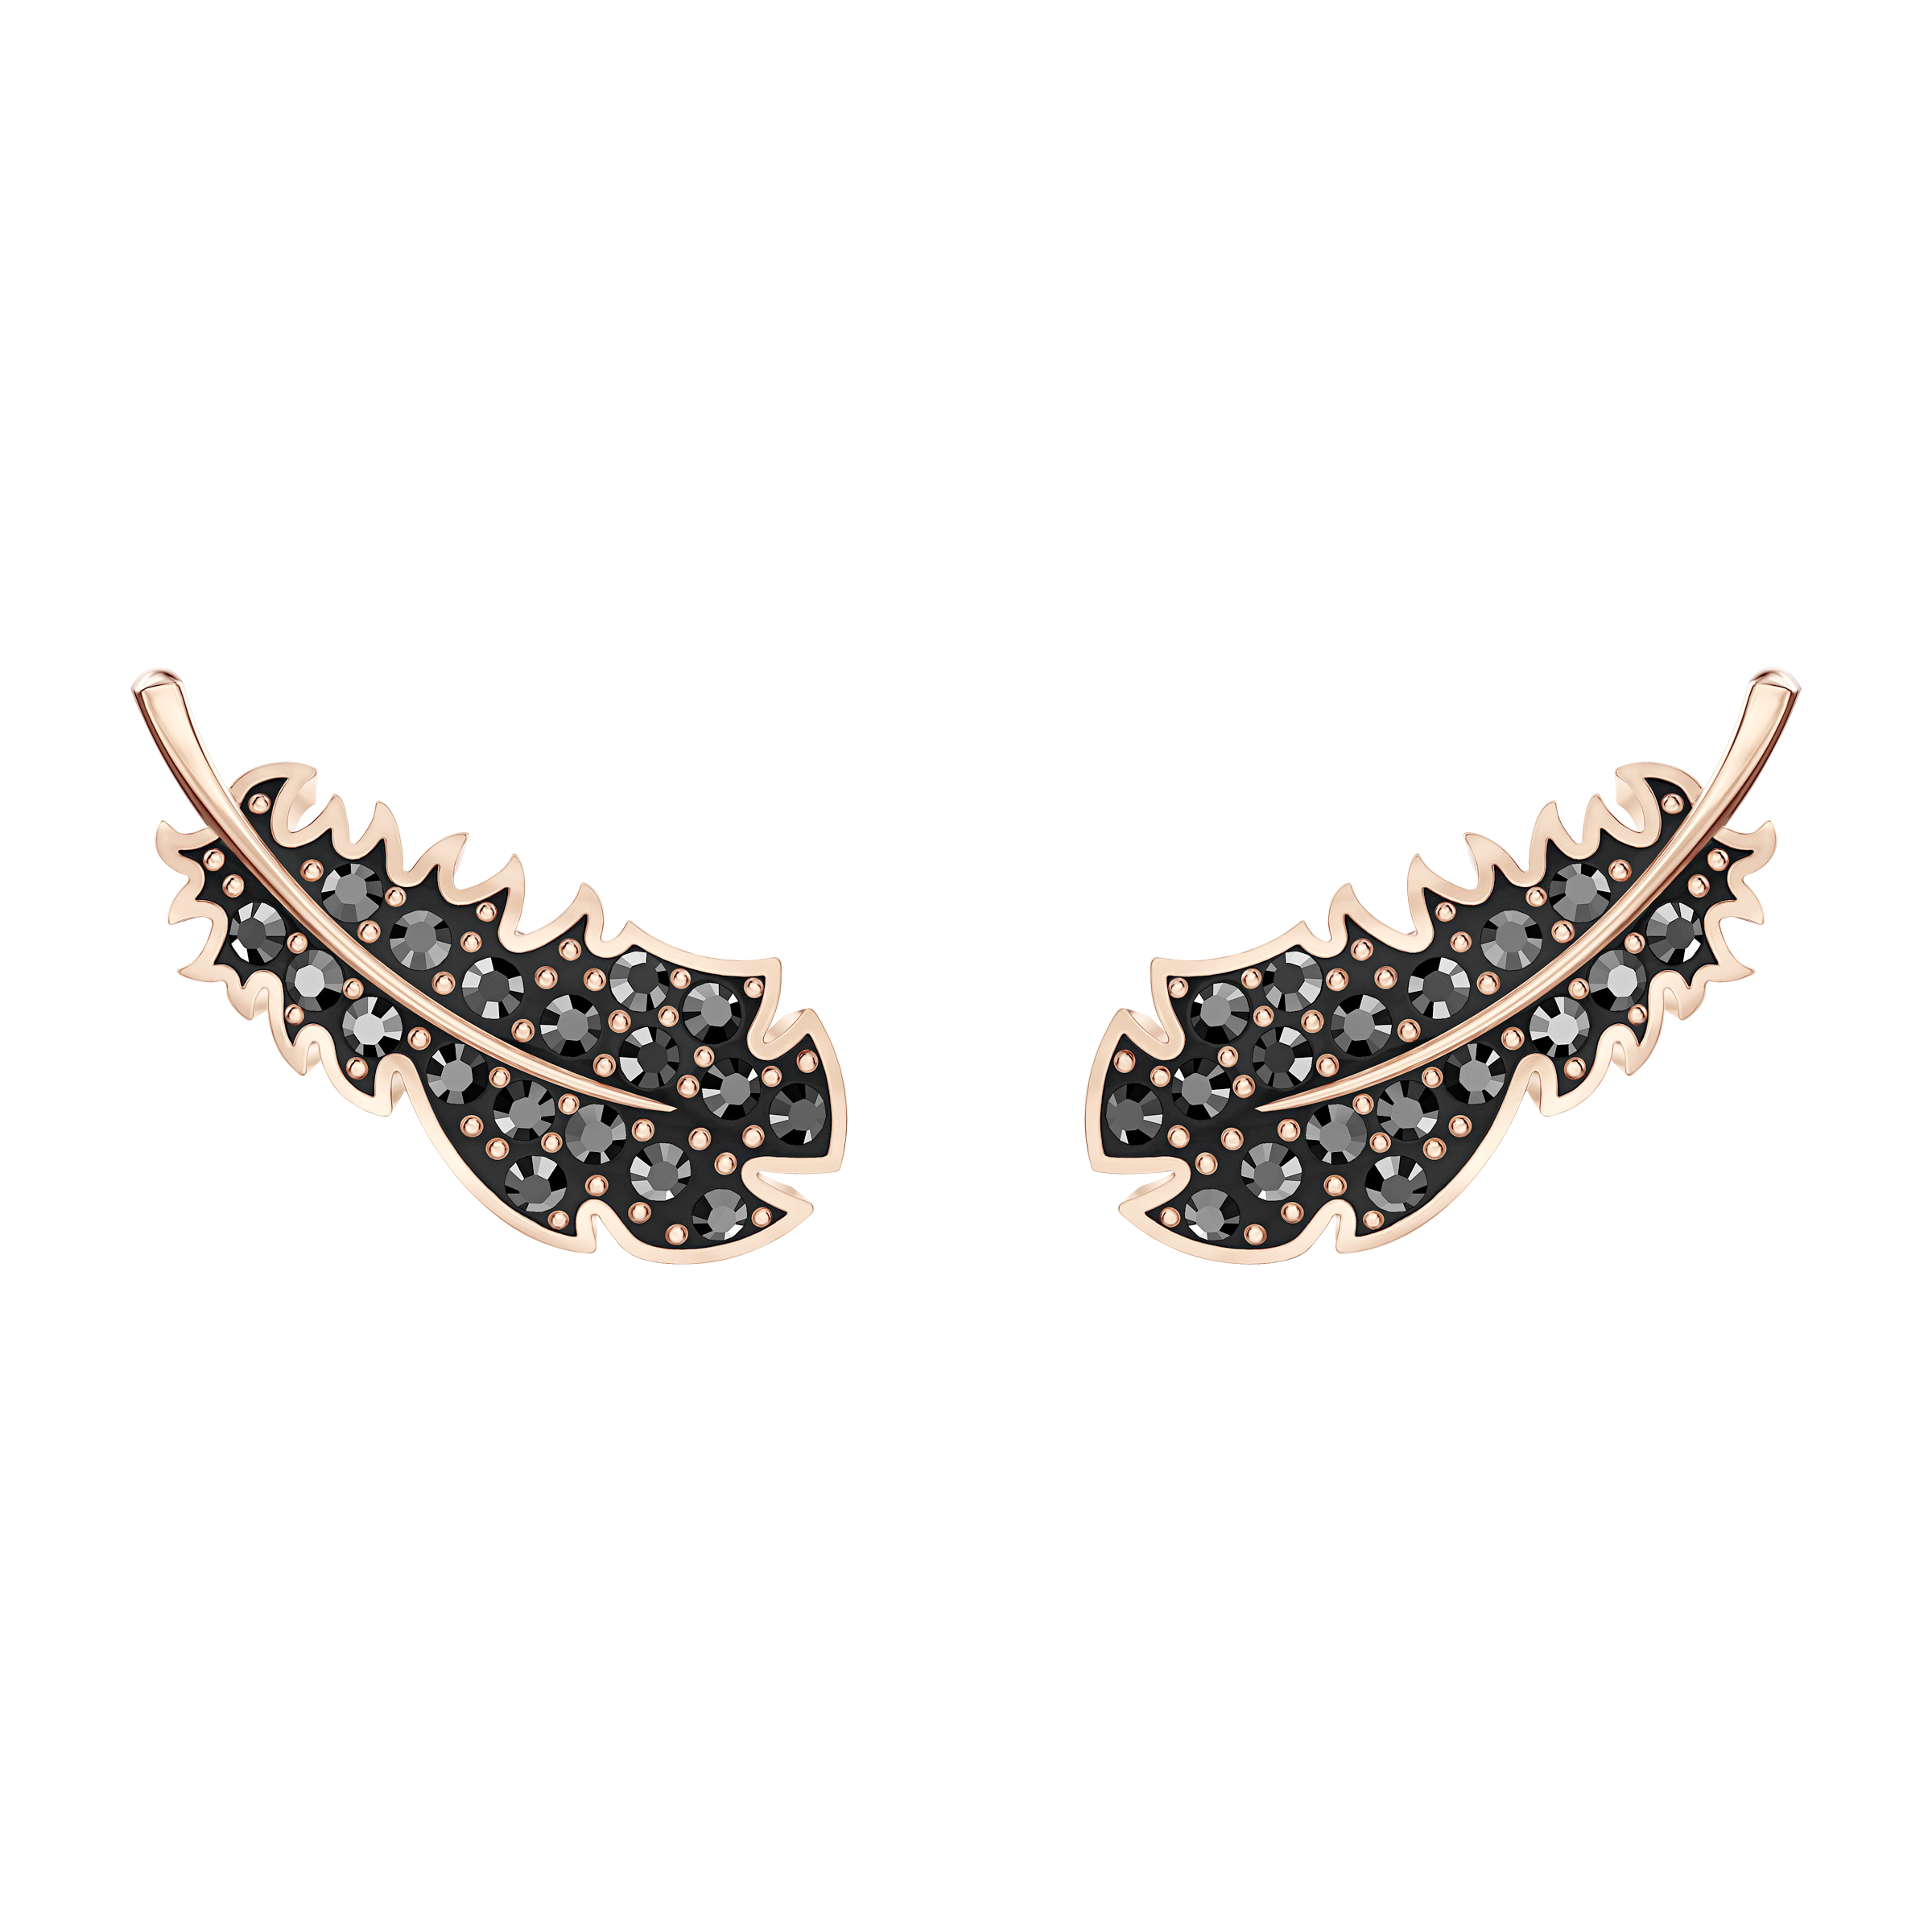 Naughty Pierced Earrings, Black, Rose-gold tone plated